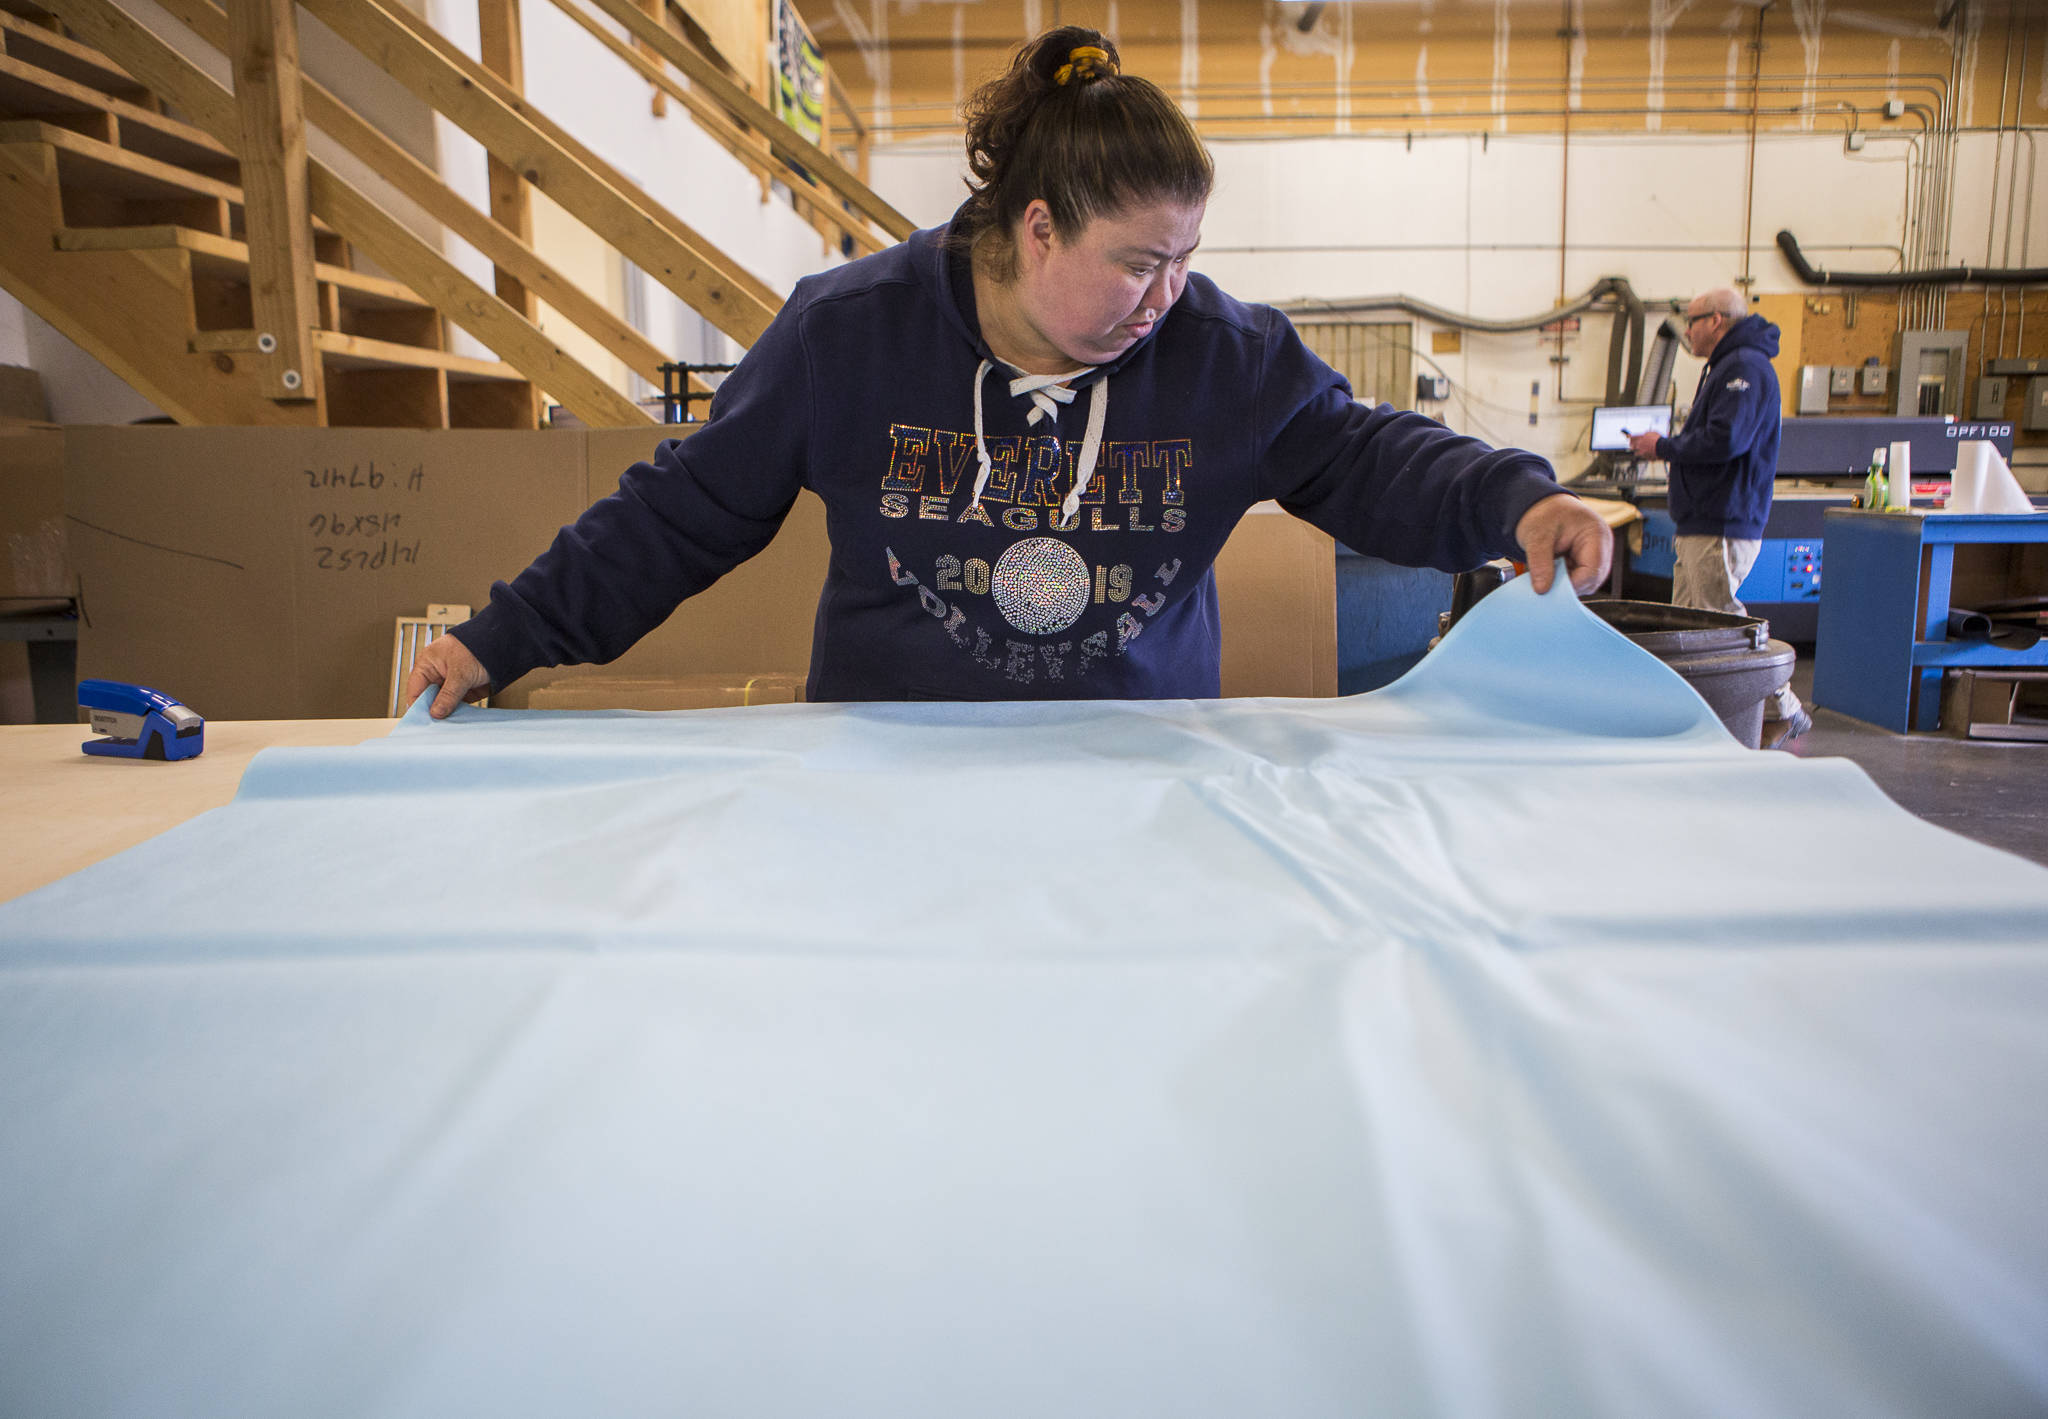 Tami Carrero lines up surgical wrap for face masks to be cut into straps and mask pieces Friday at Terrene Inc. in Mukilteo. The fabrication company specializes in laser work but modified operations to produce face masks for healthcare workers. (Olivia Vanni / The Herald)